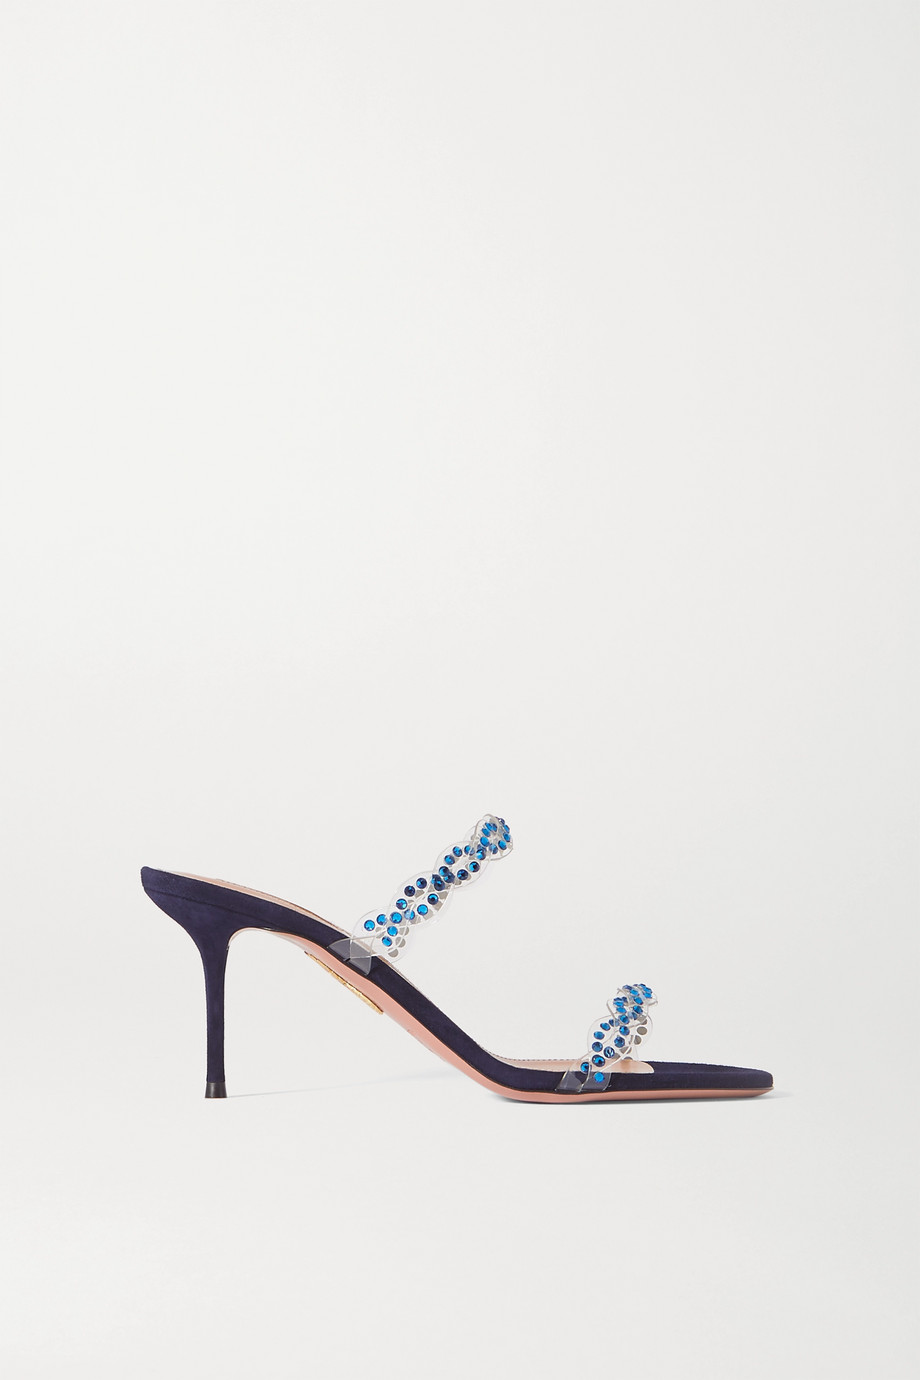 Aquazzura Heaven 75 crystal-embellished PVC and suede mules